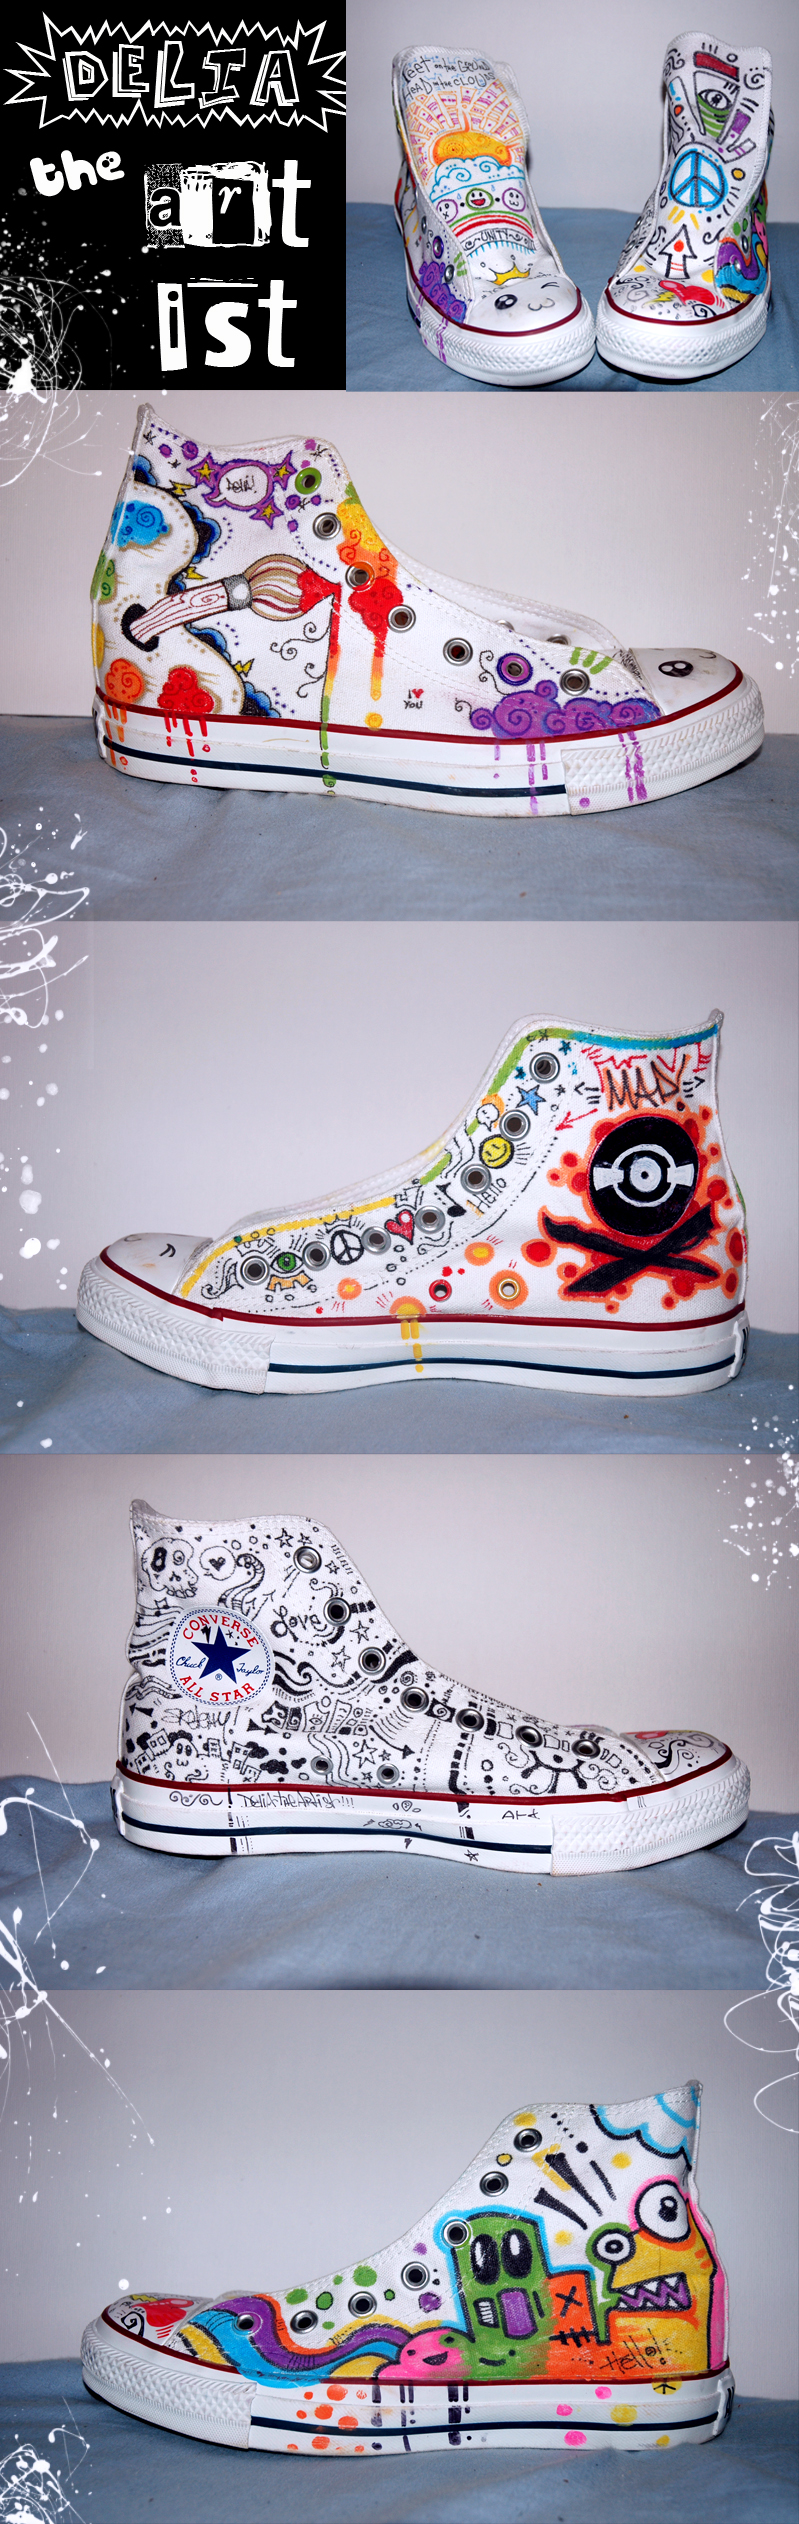 Cool Converse by DeliaTheArtist